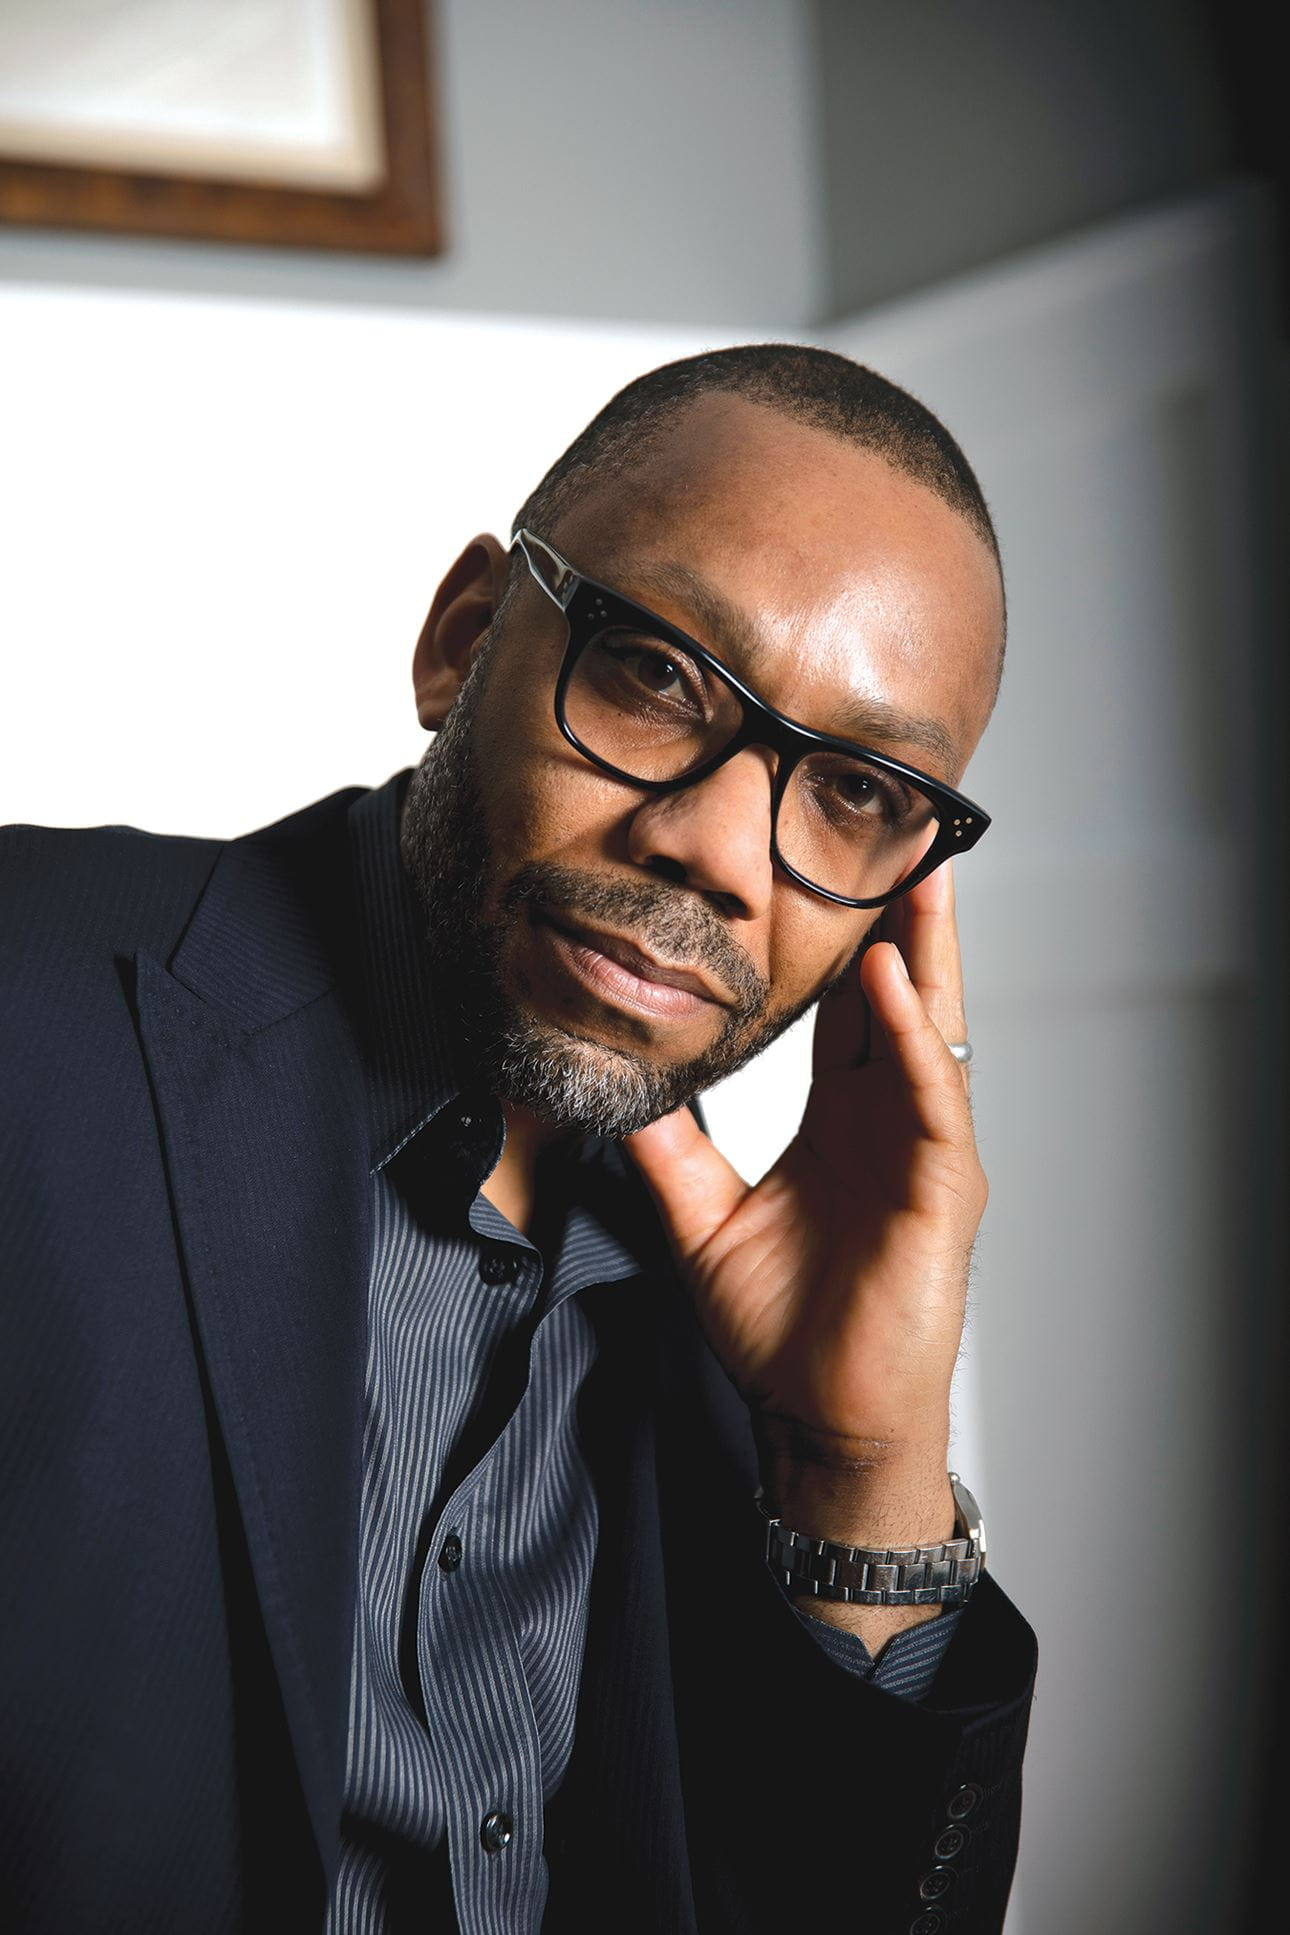 Headshot of Andre Perry. He's leaning his head on his hand, wearing a black blazer and black framed glasses.